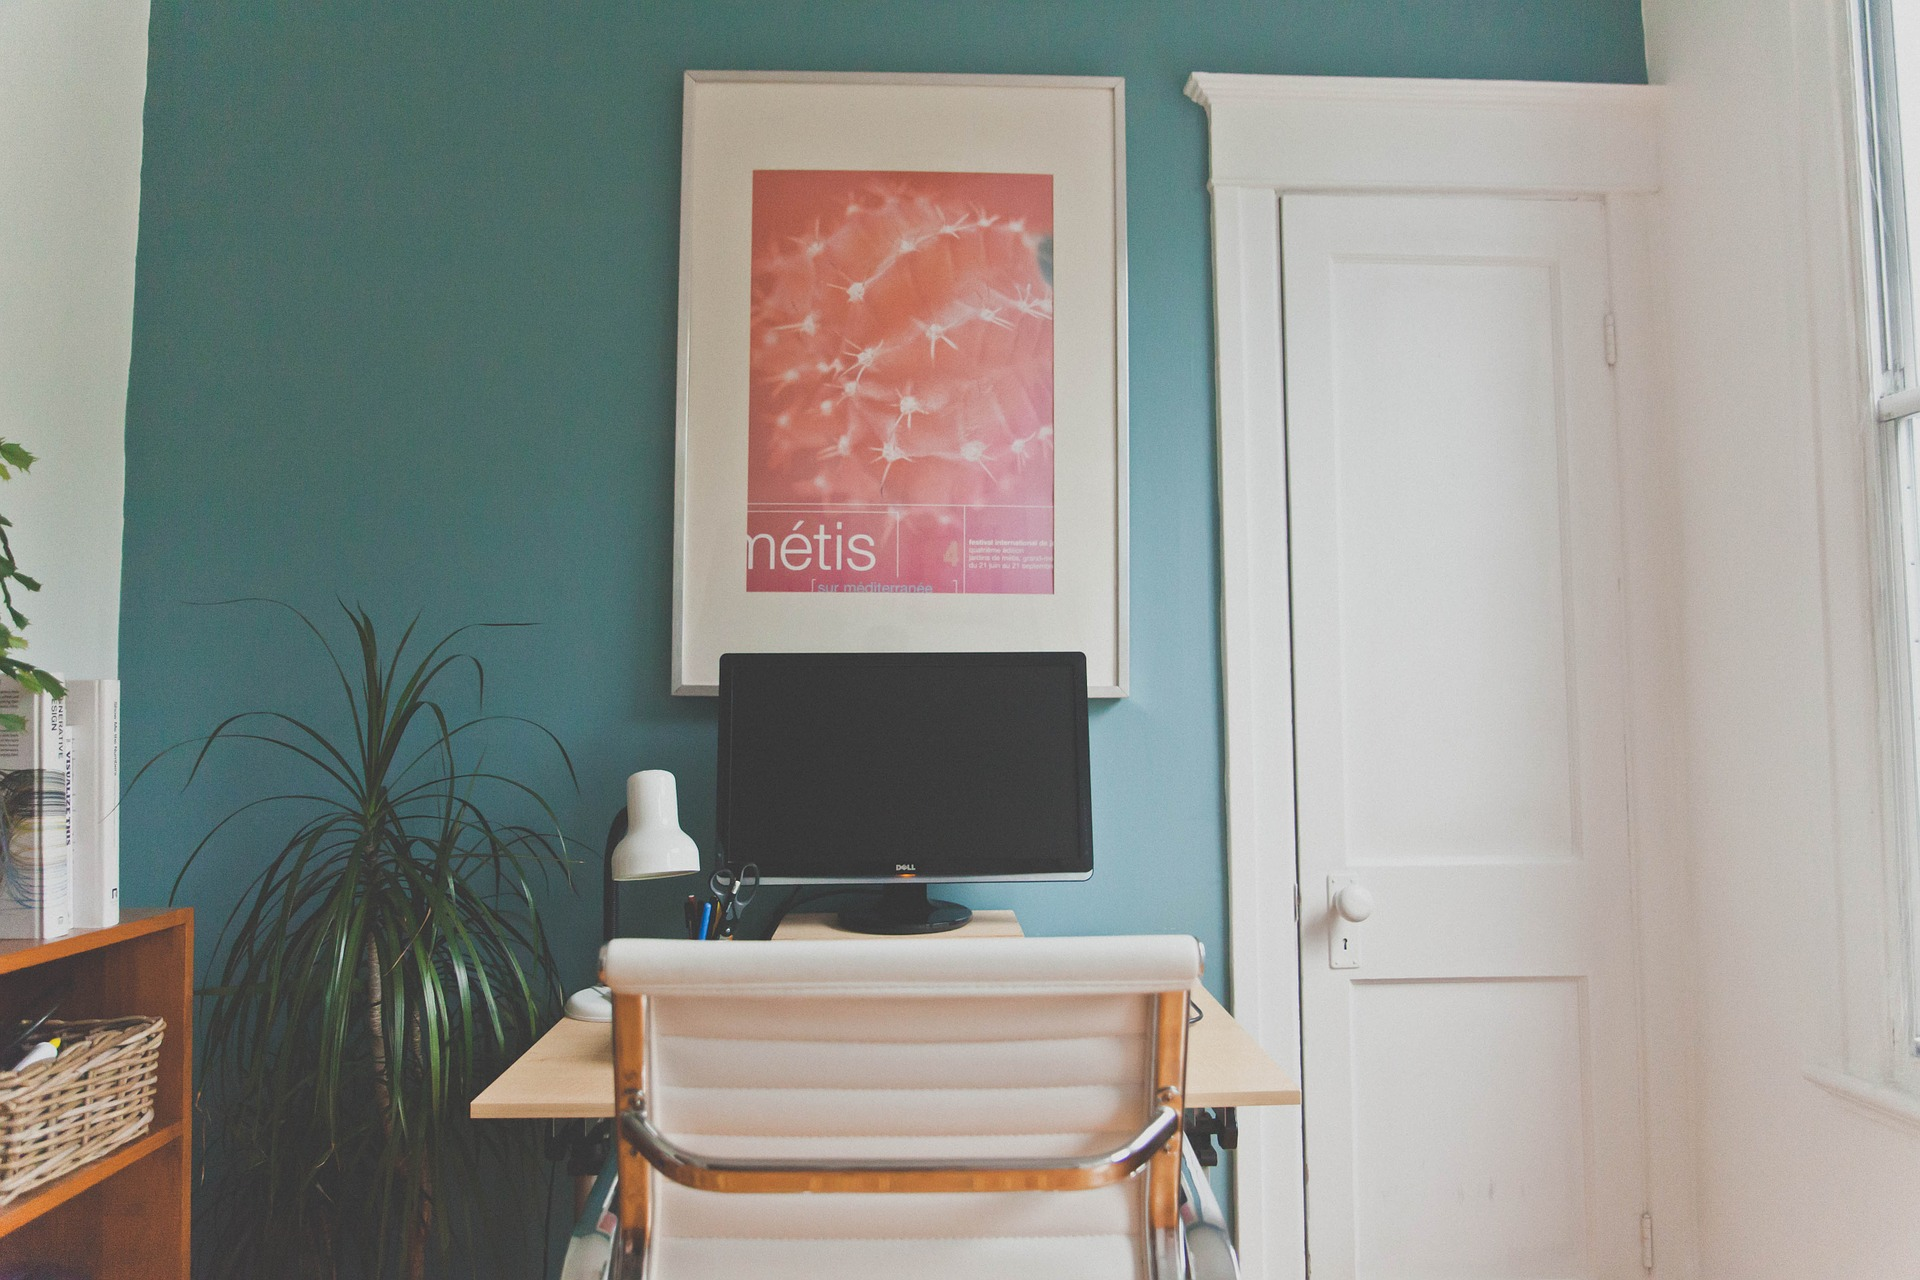 A Room of Your Own: How to Find Space to Create